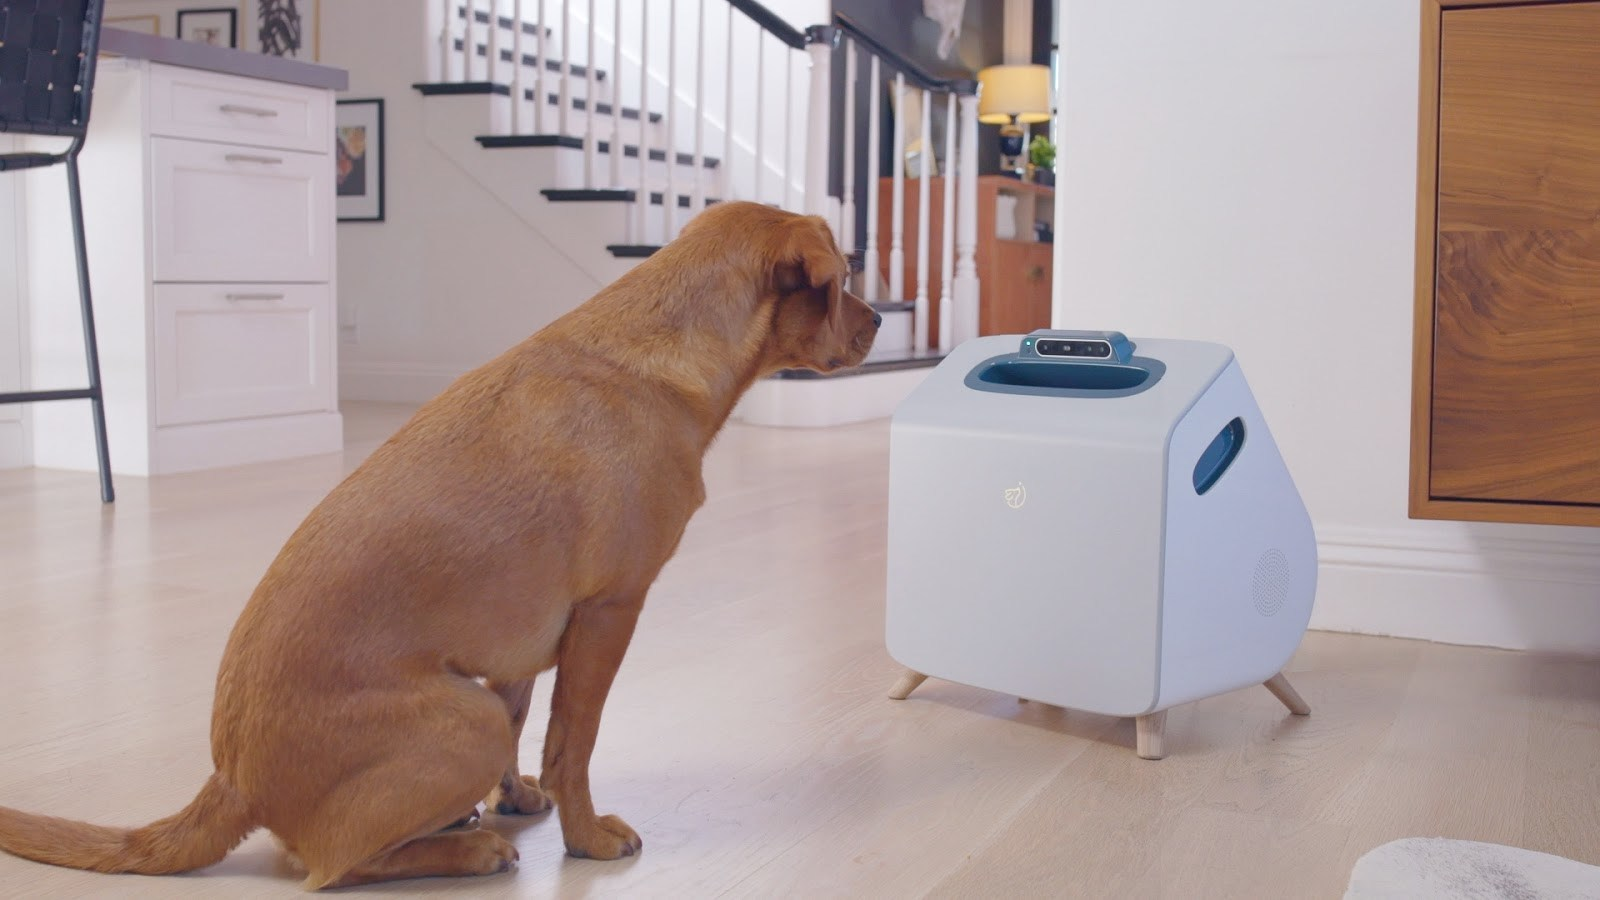 Machine learning device to train dogs